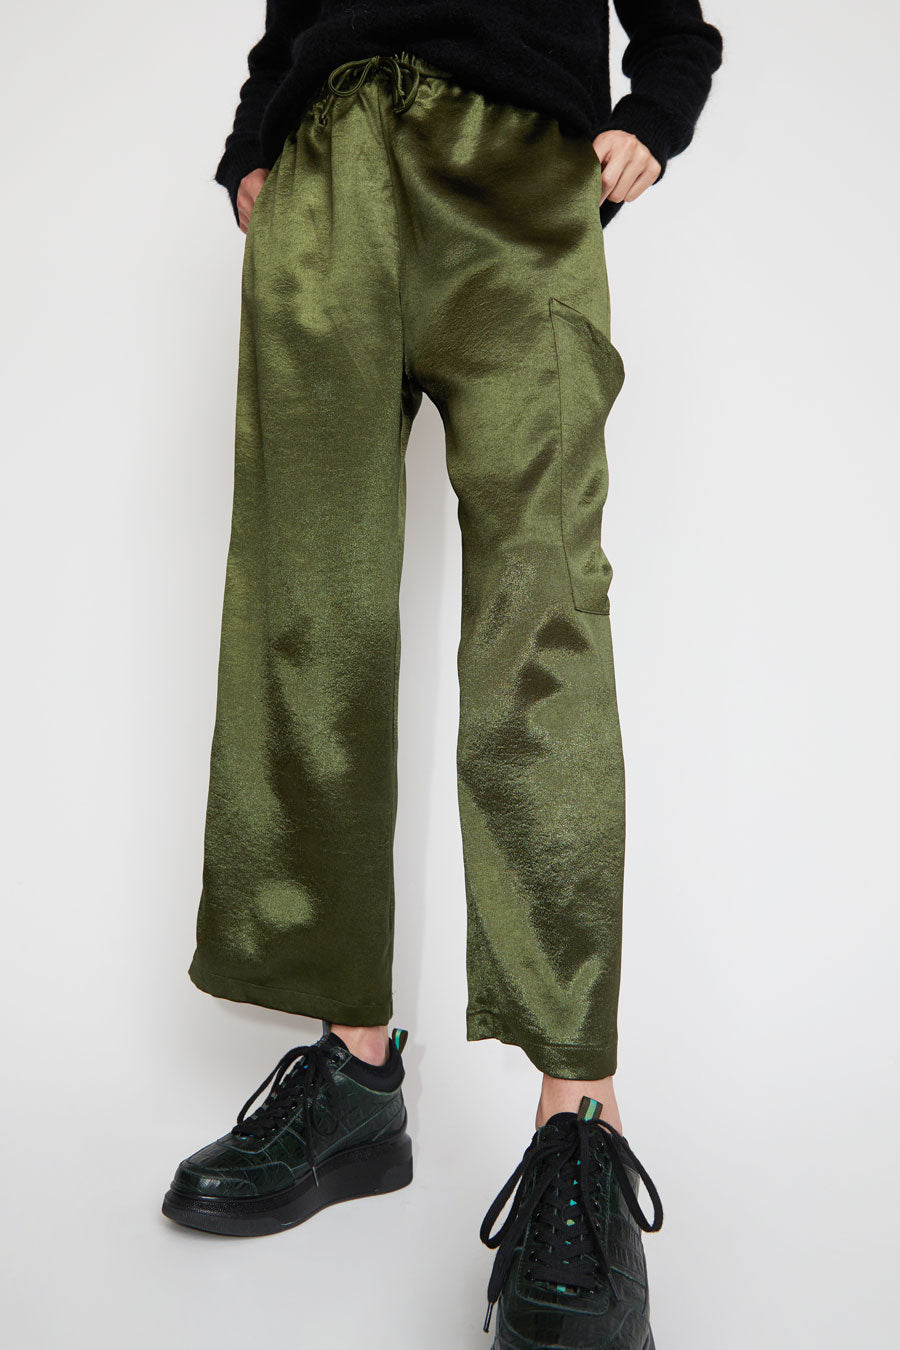 Collina Strada Dollhouse Pant in Forest Satin Crepe